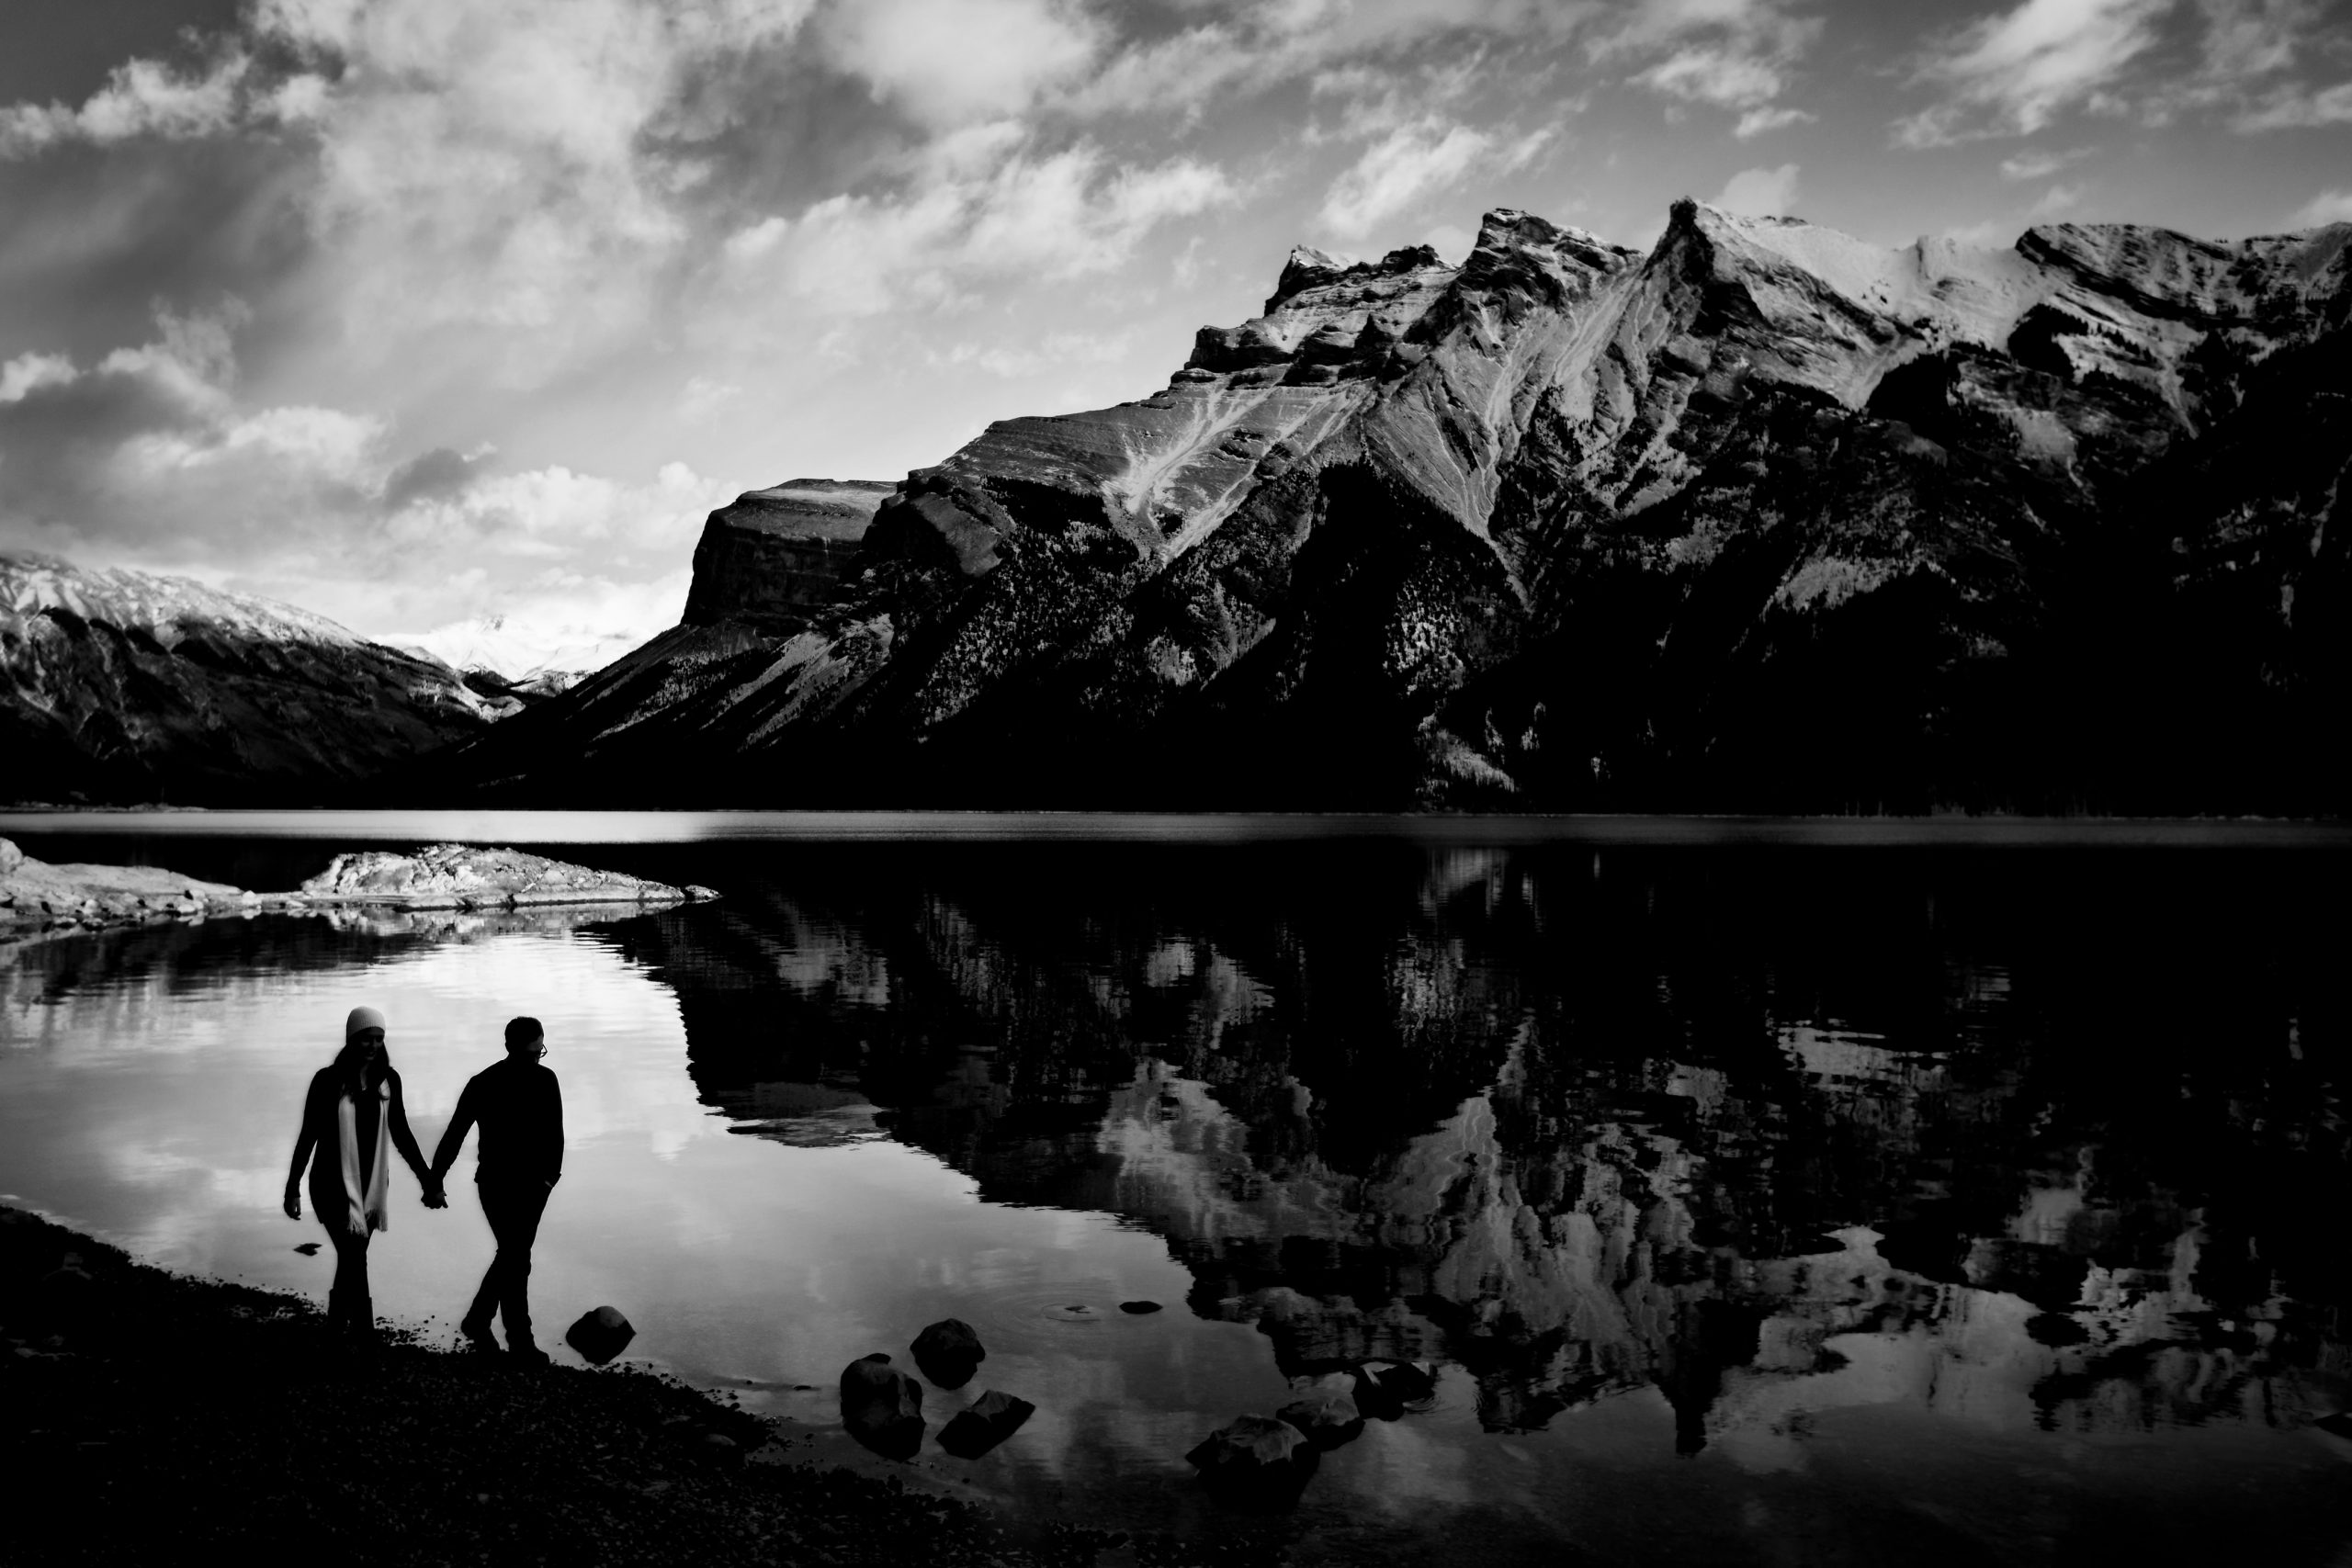 A couple walk along a lake with a clear reflection of the mountain in the background